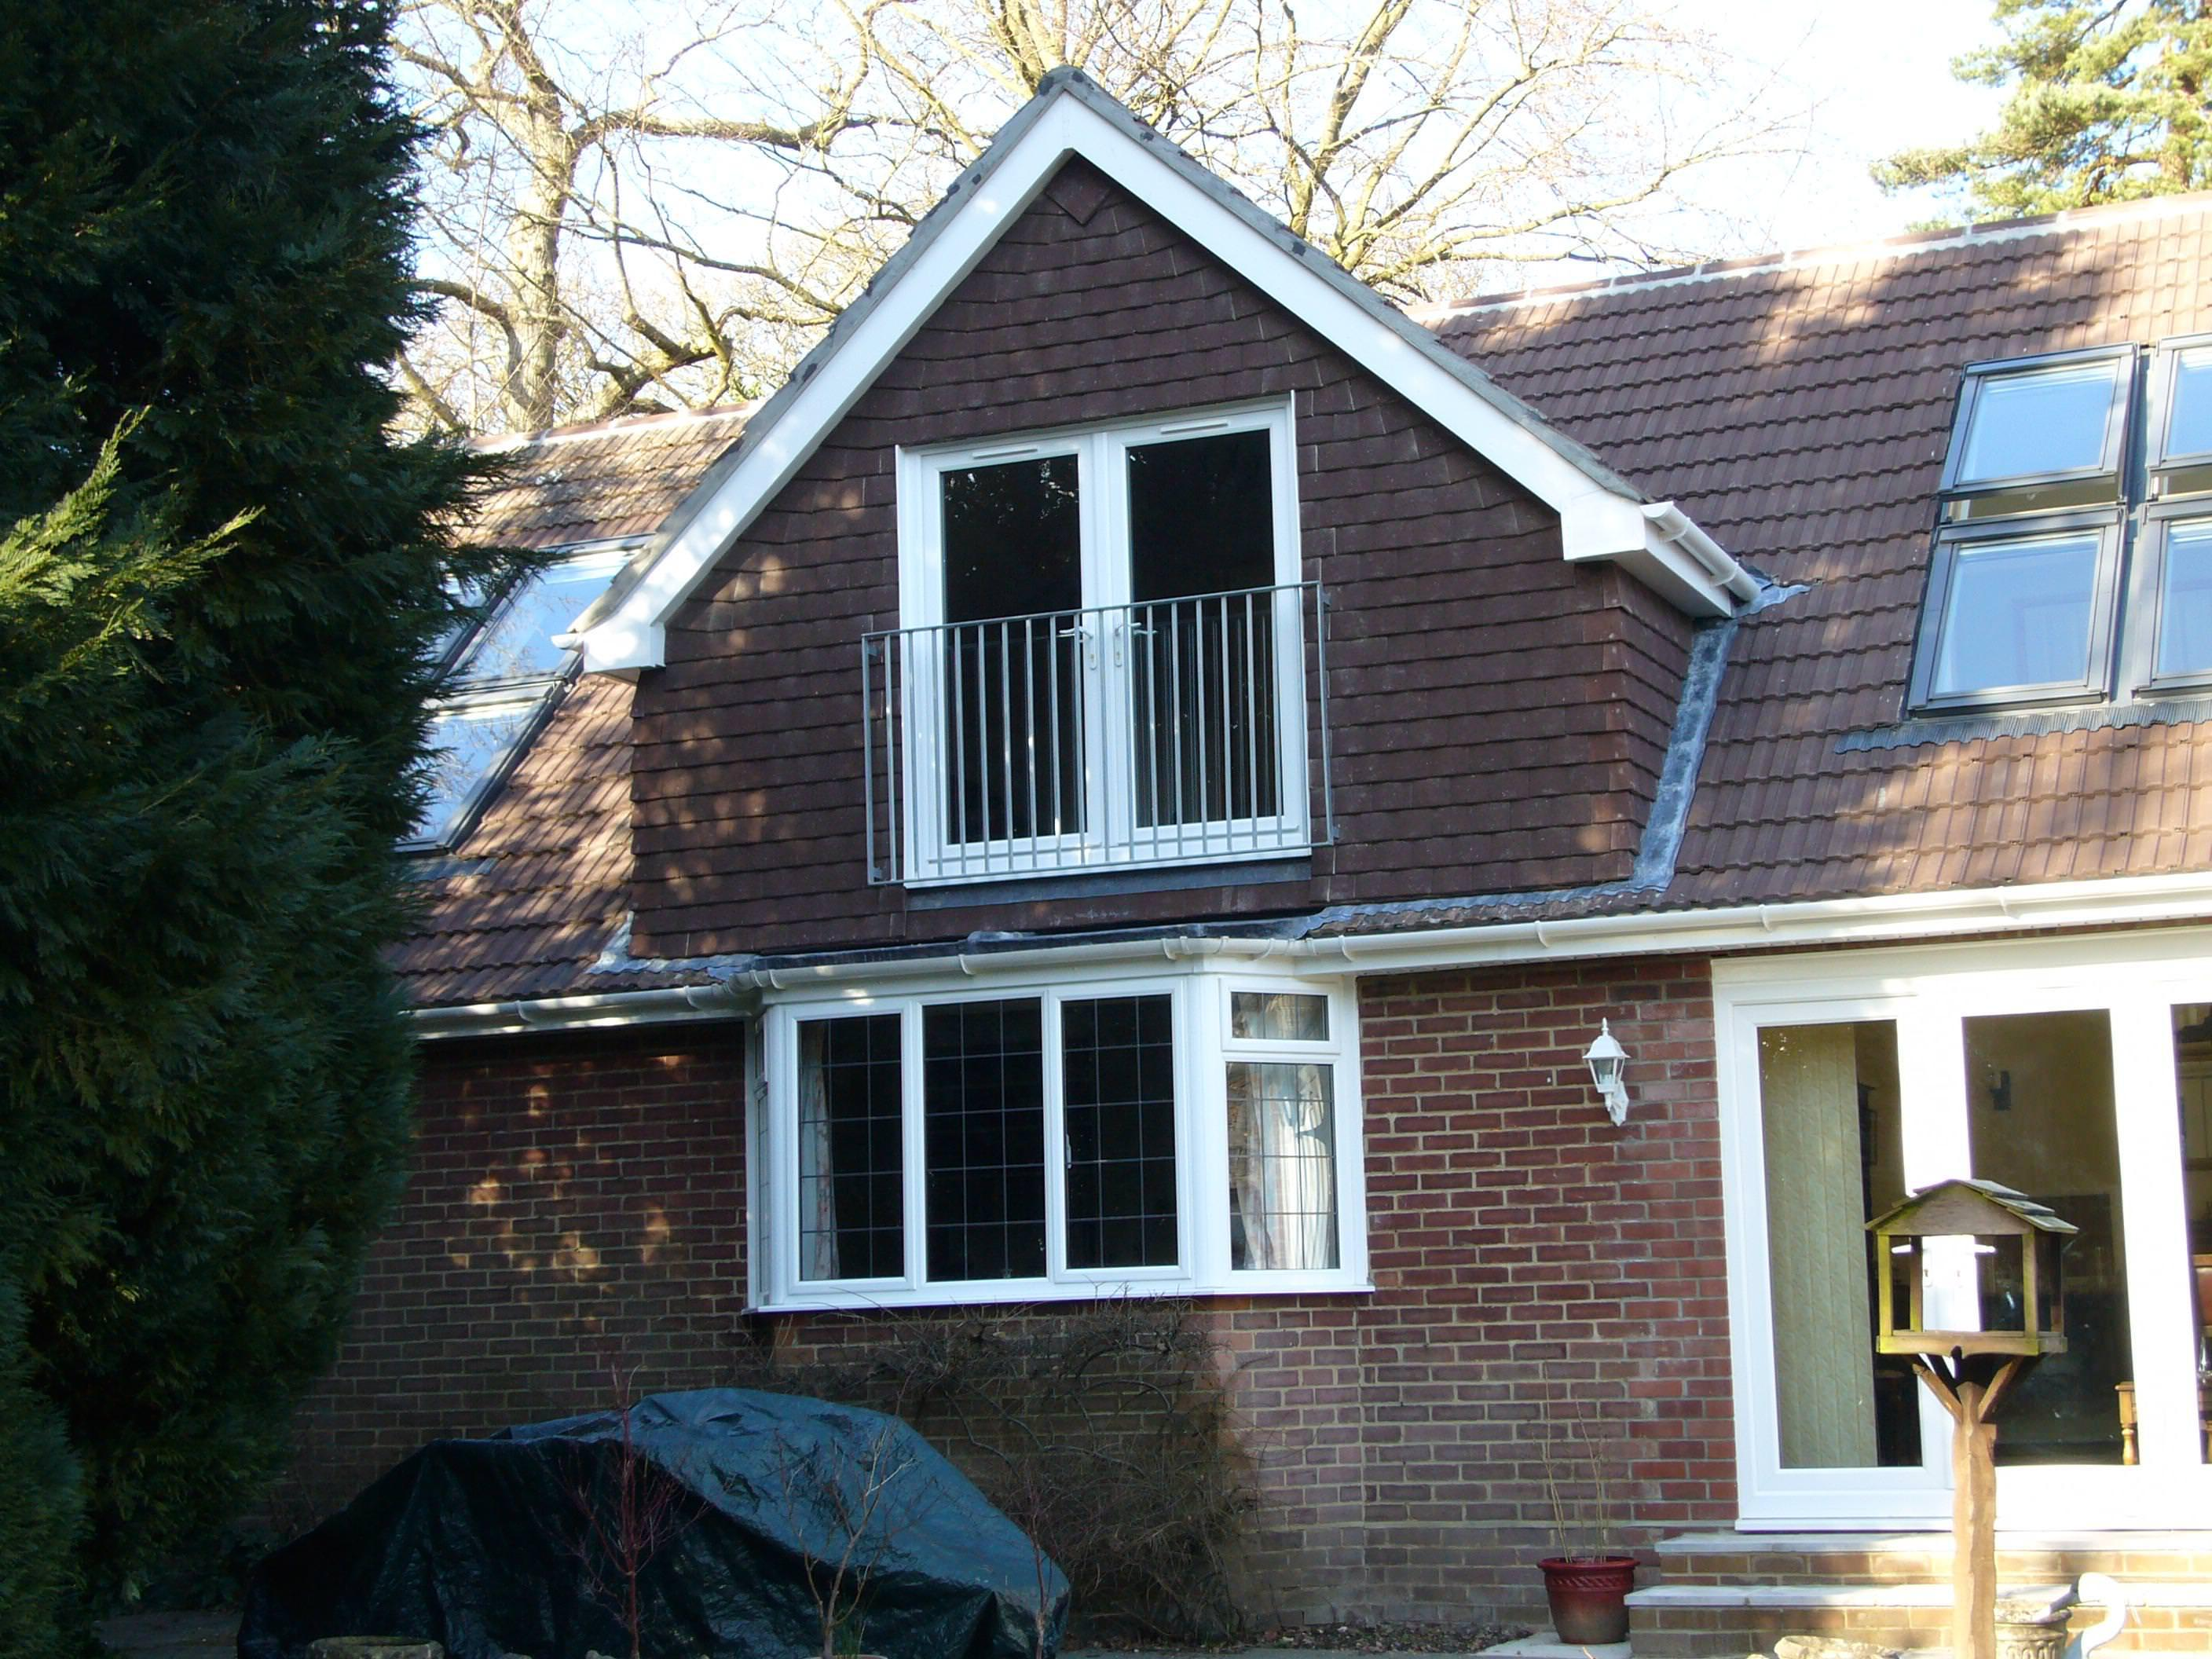 Dormer Windows Advantages